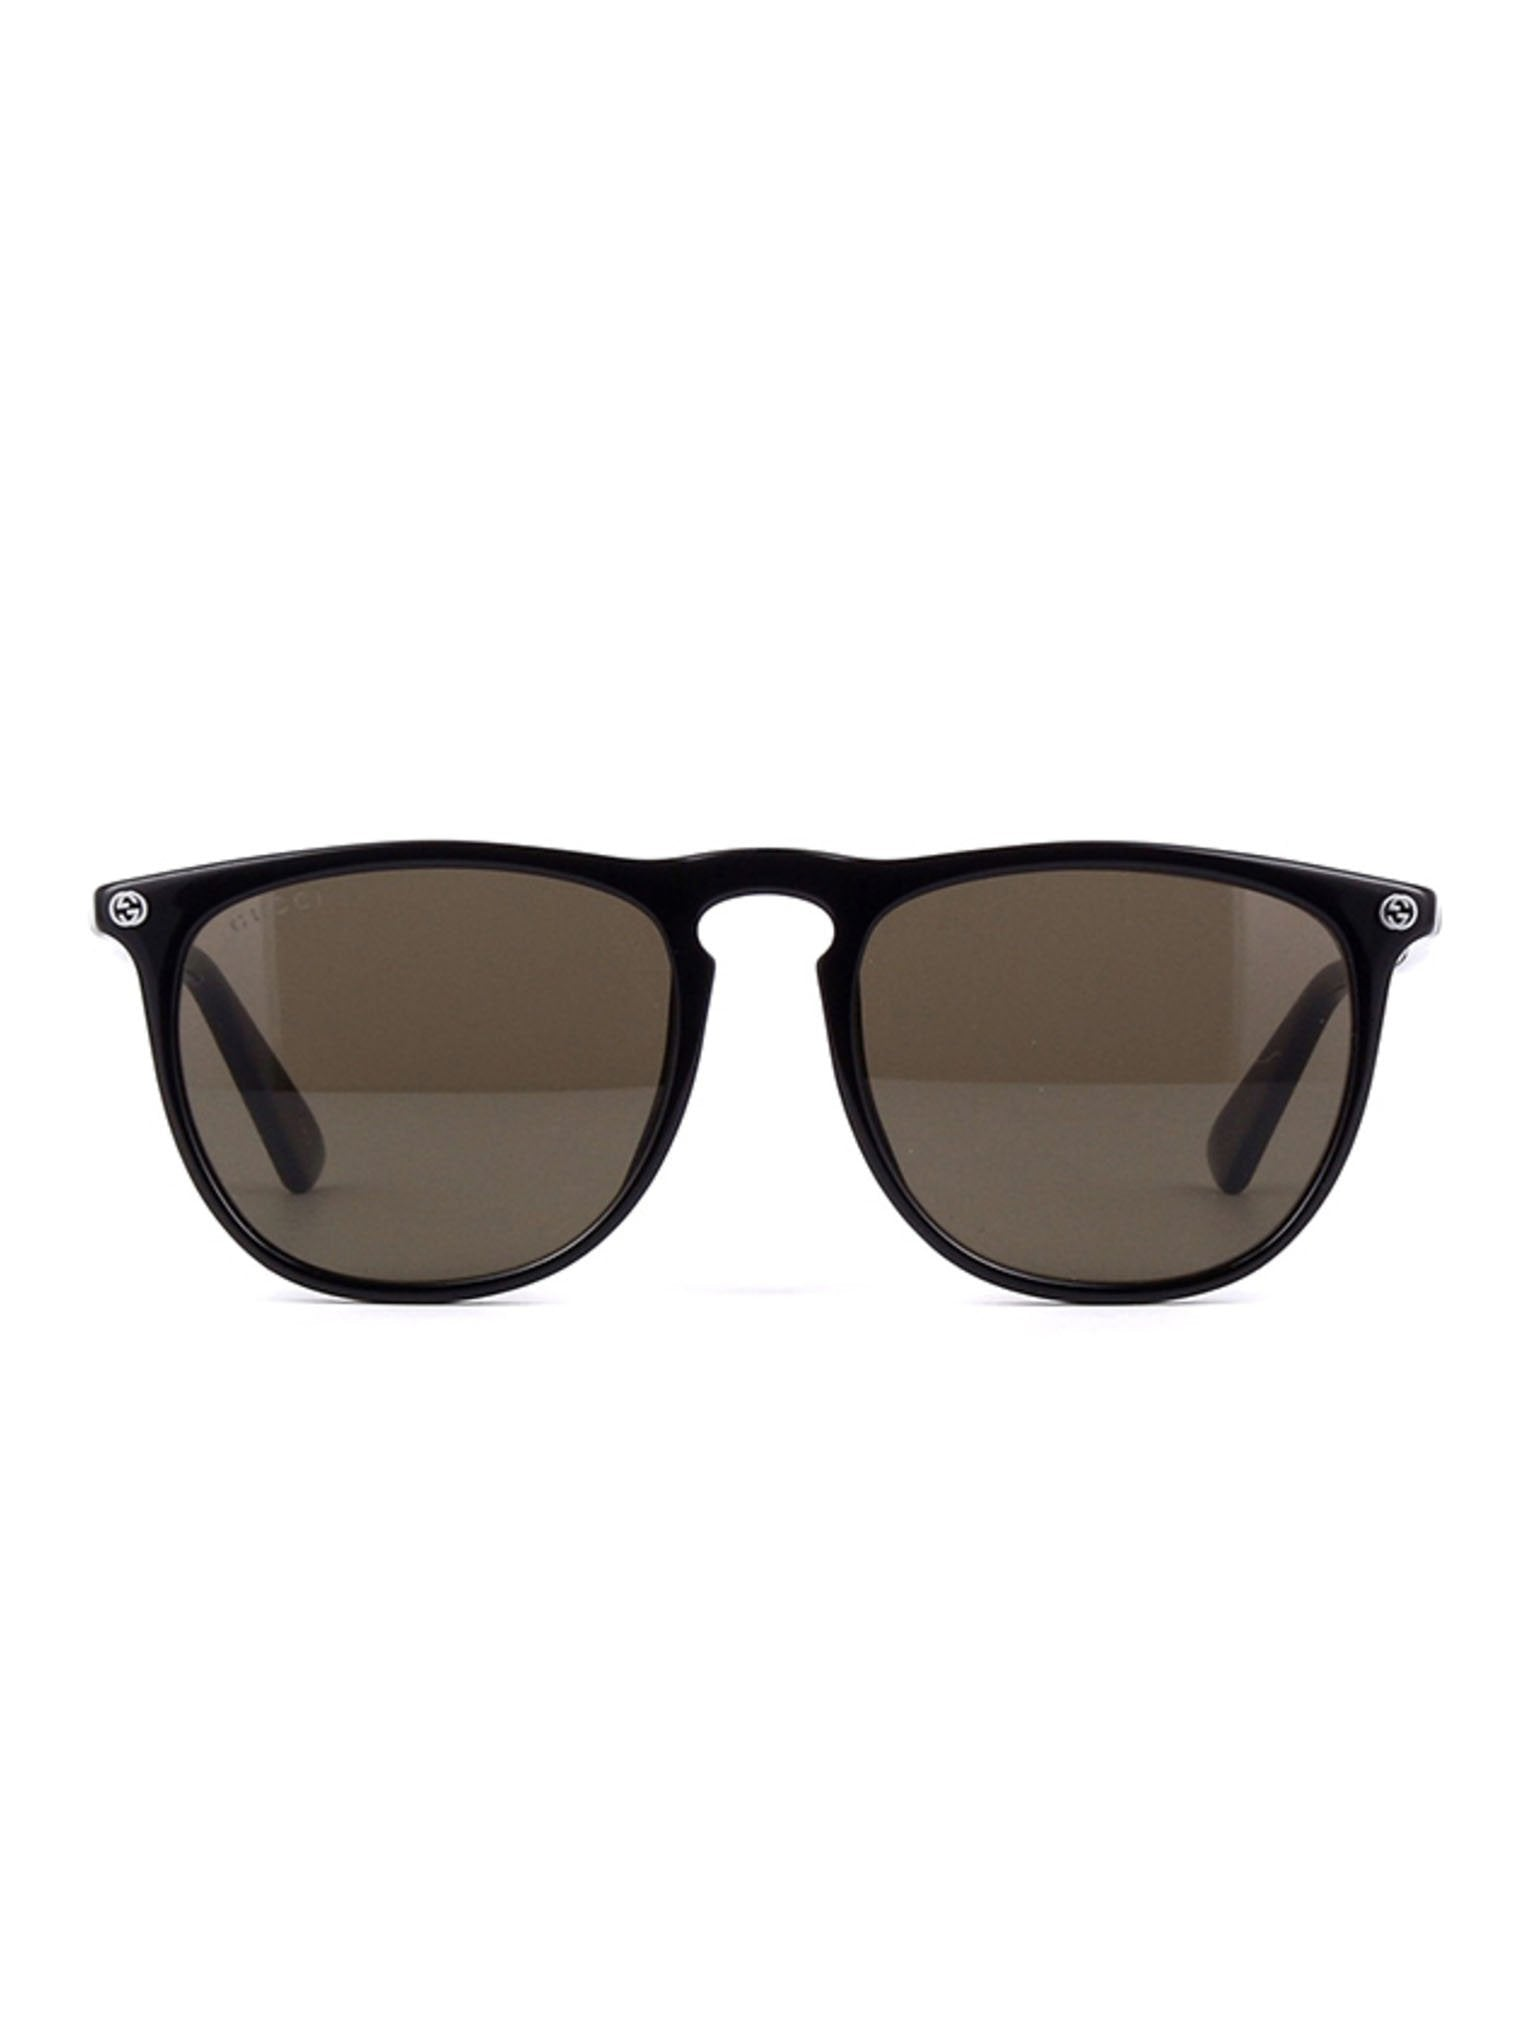 517be52f80e77 GG0120S-001 Square Sunglasses - Black   Brown – ForwardModa